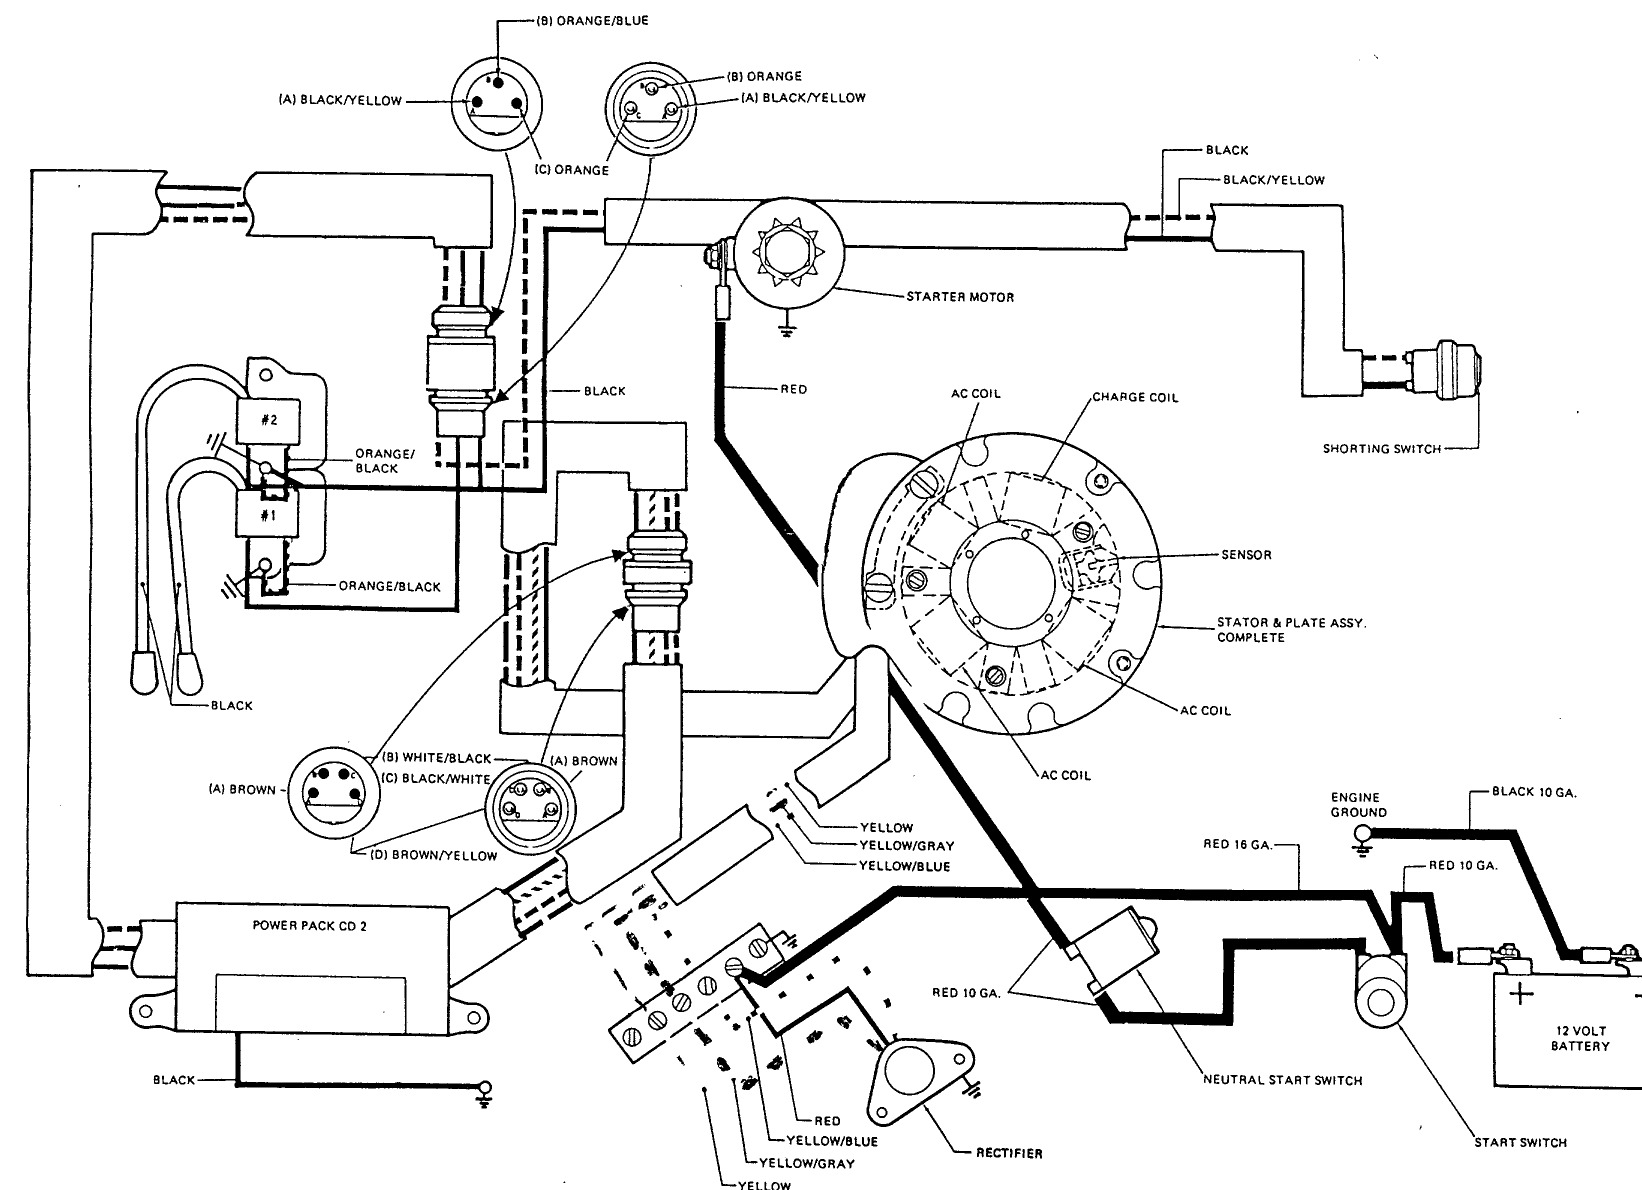 electrical diagram electric maintaining johnson evinrude 9 outboard motor starter wiring at suagrazia.org